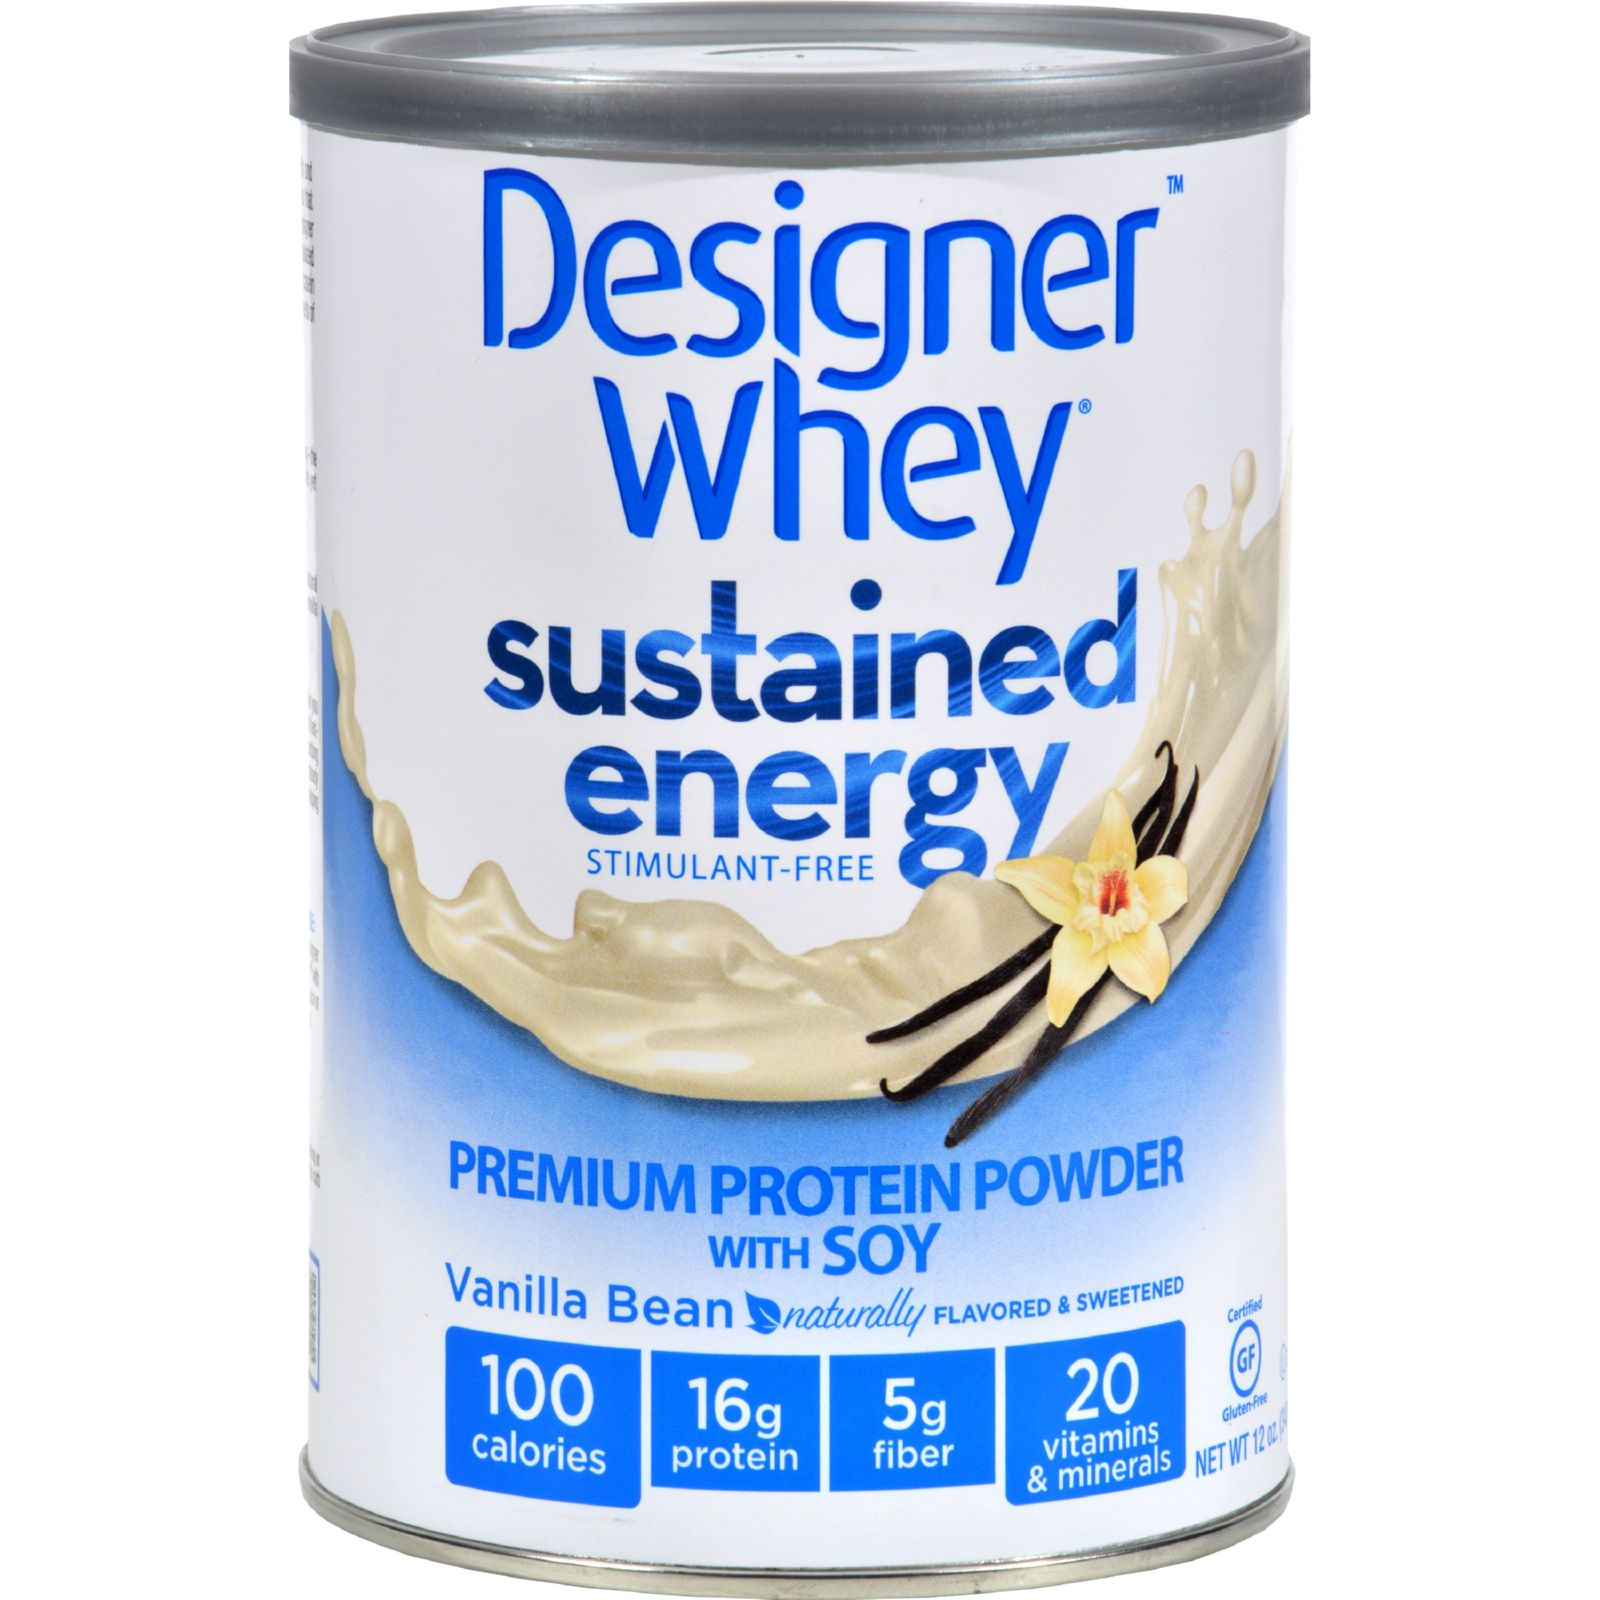 Designer Whey Protein Powder - Sustained Energy Vanilla Bean - 12 oz